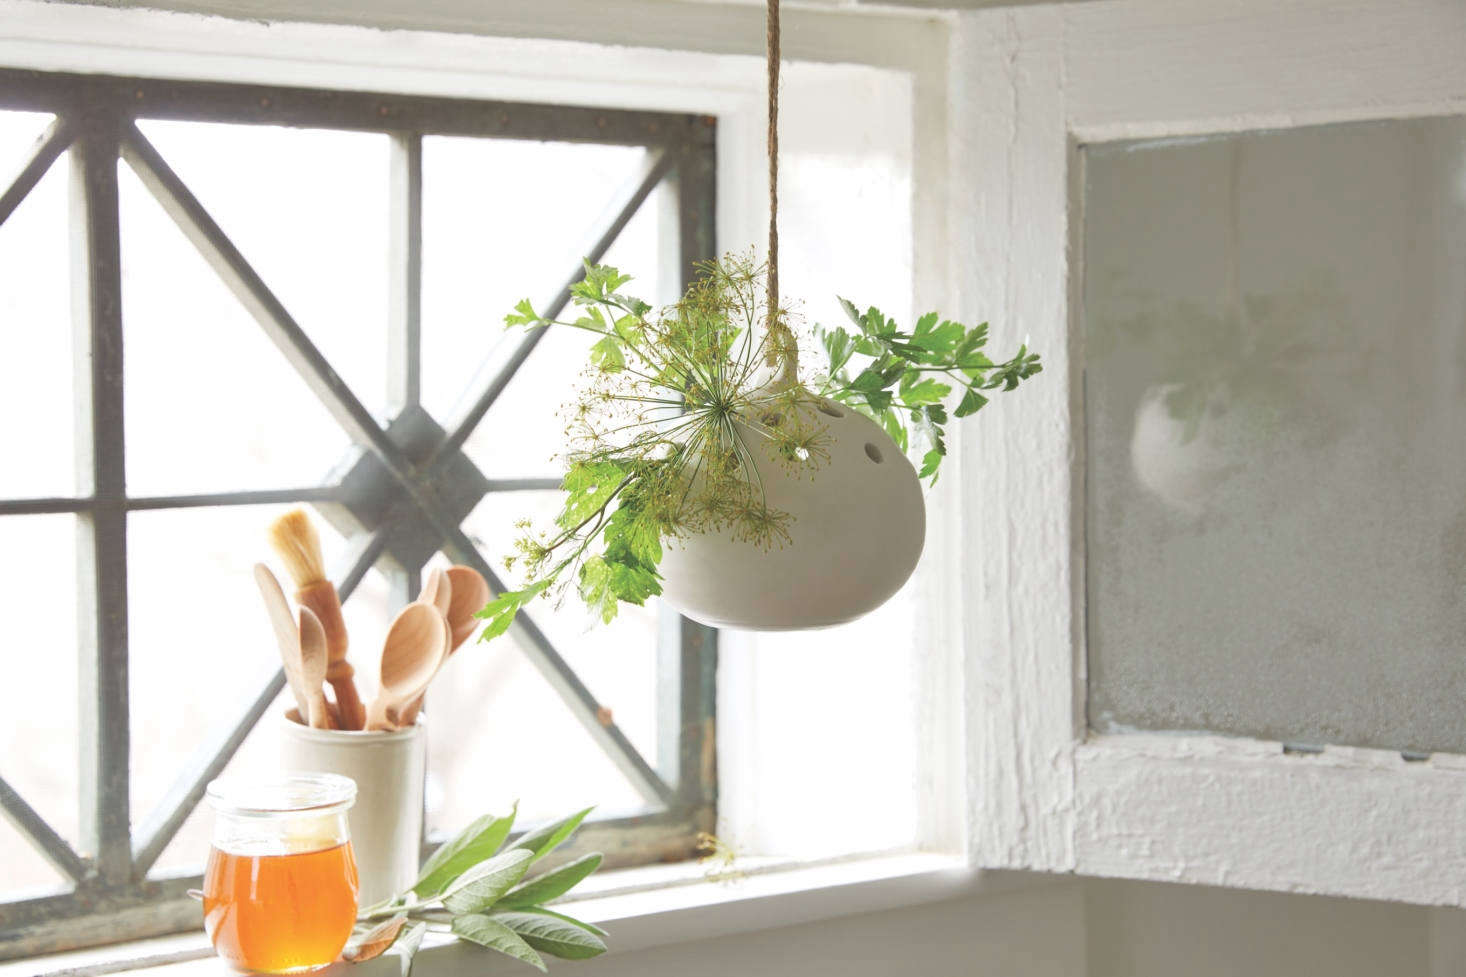 A matte-white-glazed Ceramic Hanging Flower Frog Vase, $56.50, is ideal in the kitchen for holding cut herb sprigs.